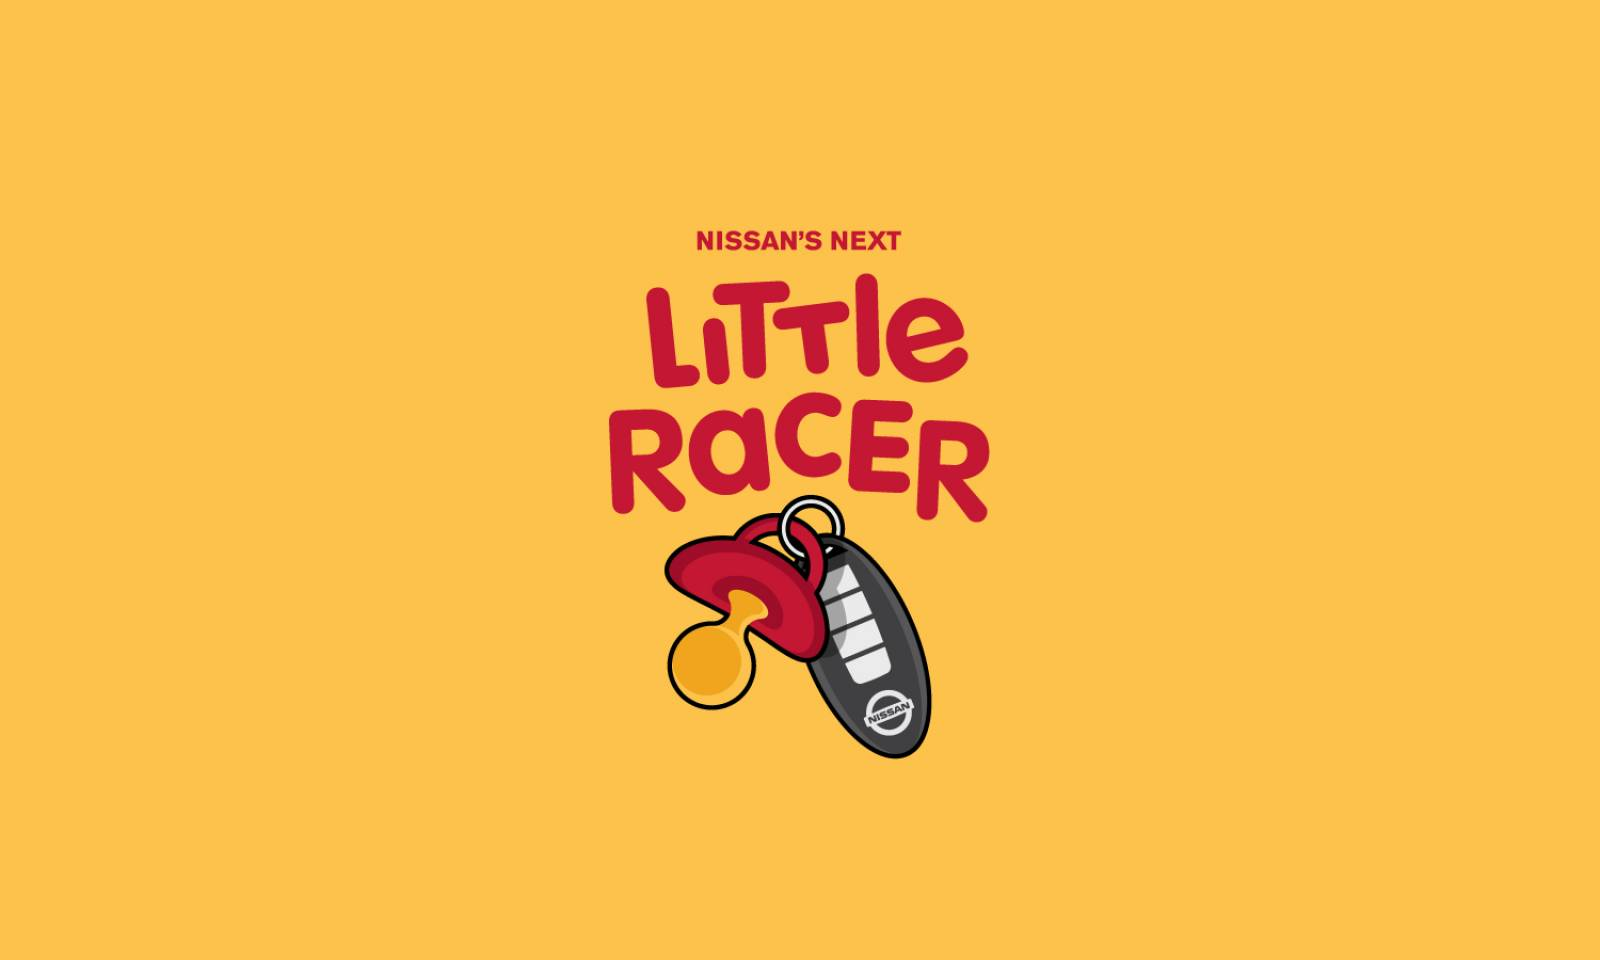 logo-Nissan-little-race-logo-corporate-identity-agency-graphic-design-canterbury.jpg